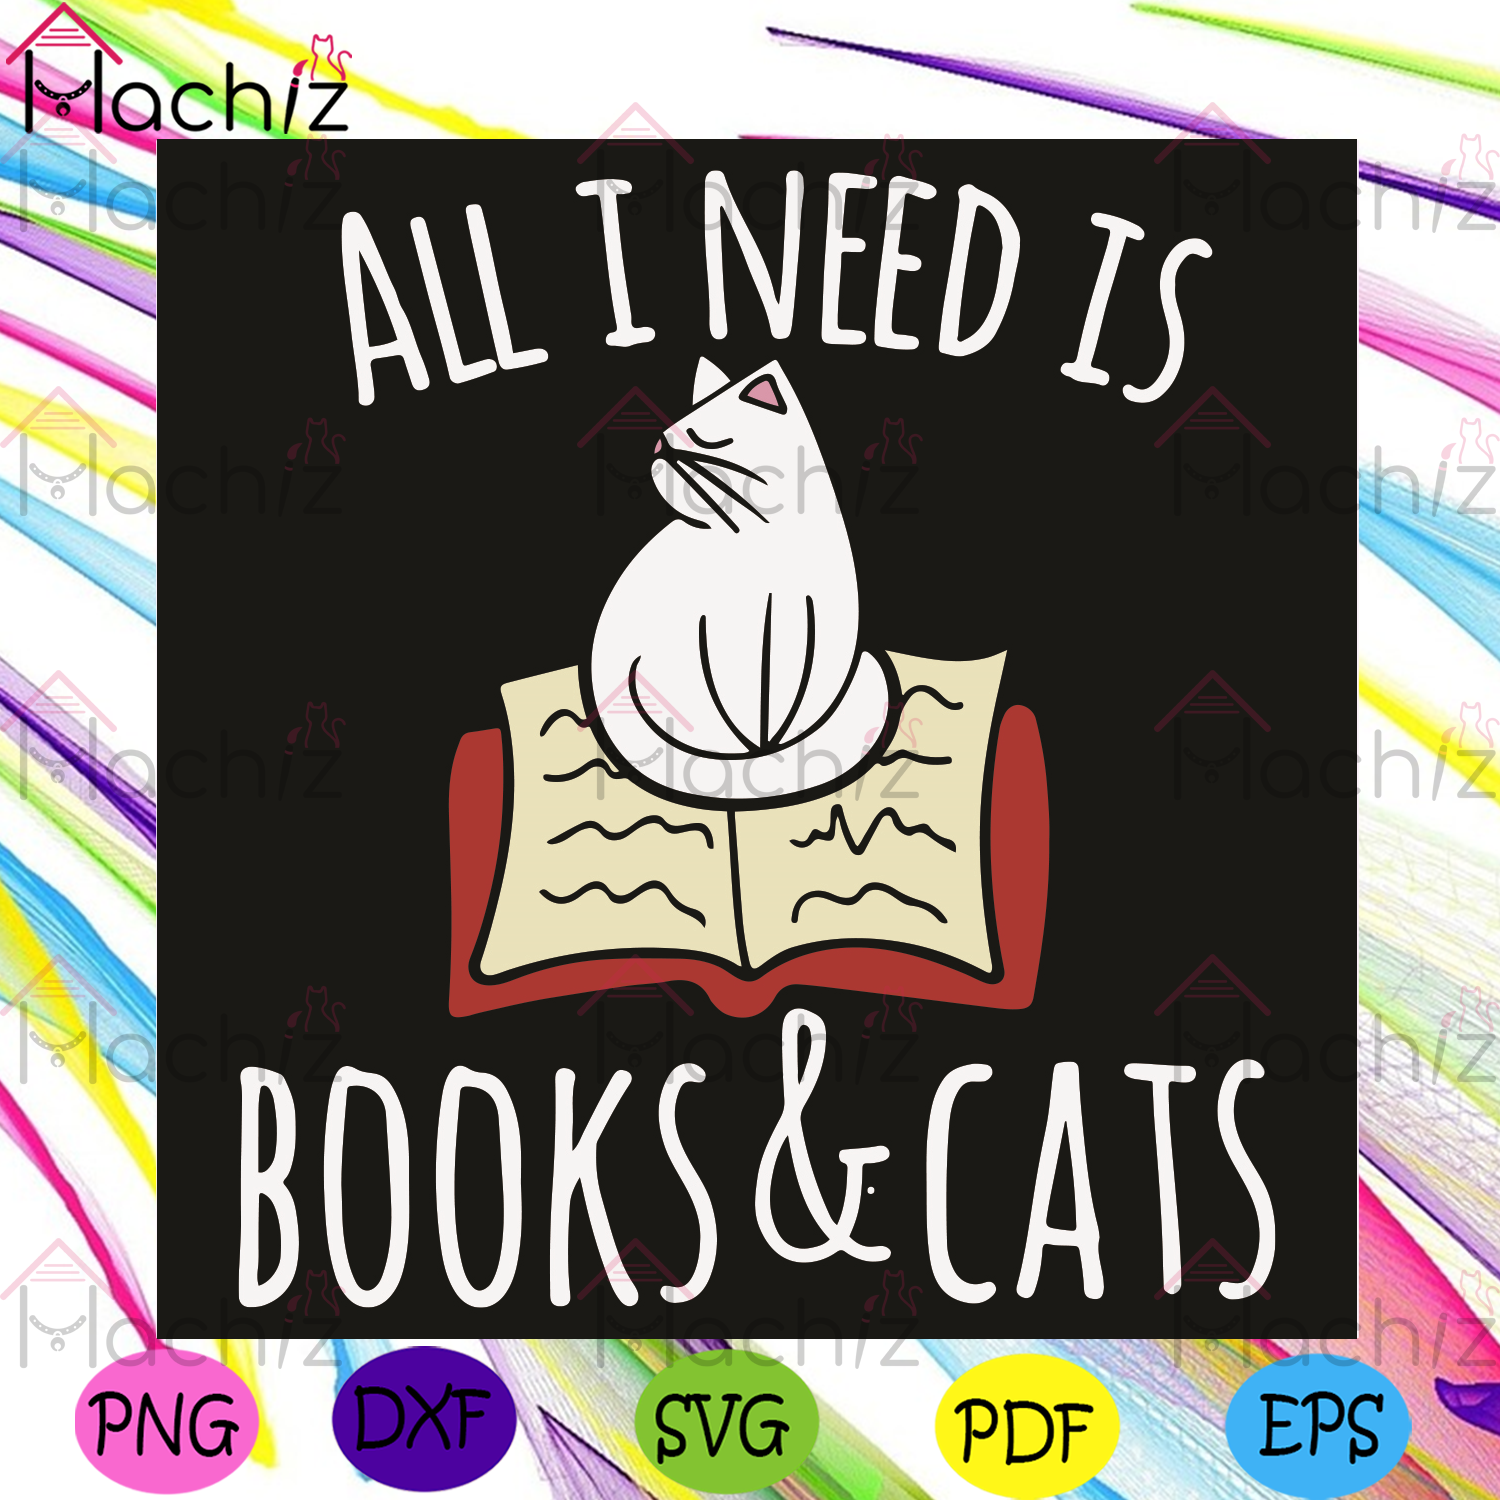 All I Need Is Book And Cat Svg, Trending Svg, Cat Svg, Book Svg, Cat Lovers Svg, Book Lovers Svg, Hobby Svg, Cat Gift Svg, Reading Book Svg, Reading Svg, Reading Lovers Svg, Reader Svg, Cat Mom Svg, Animal Svg